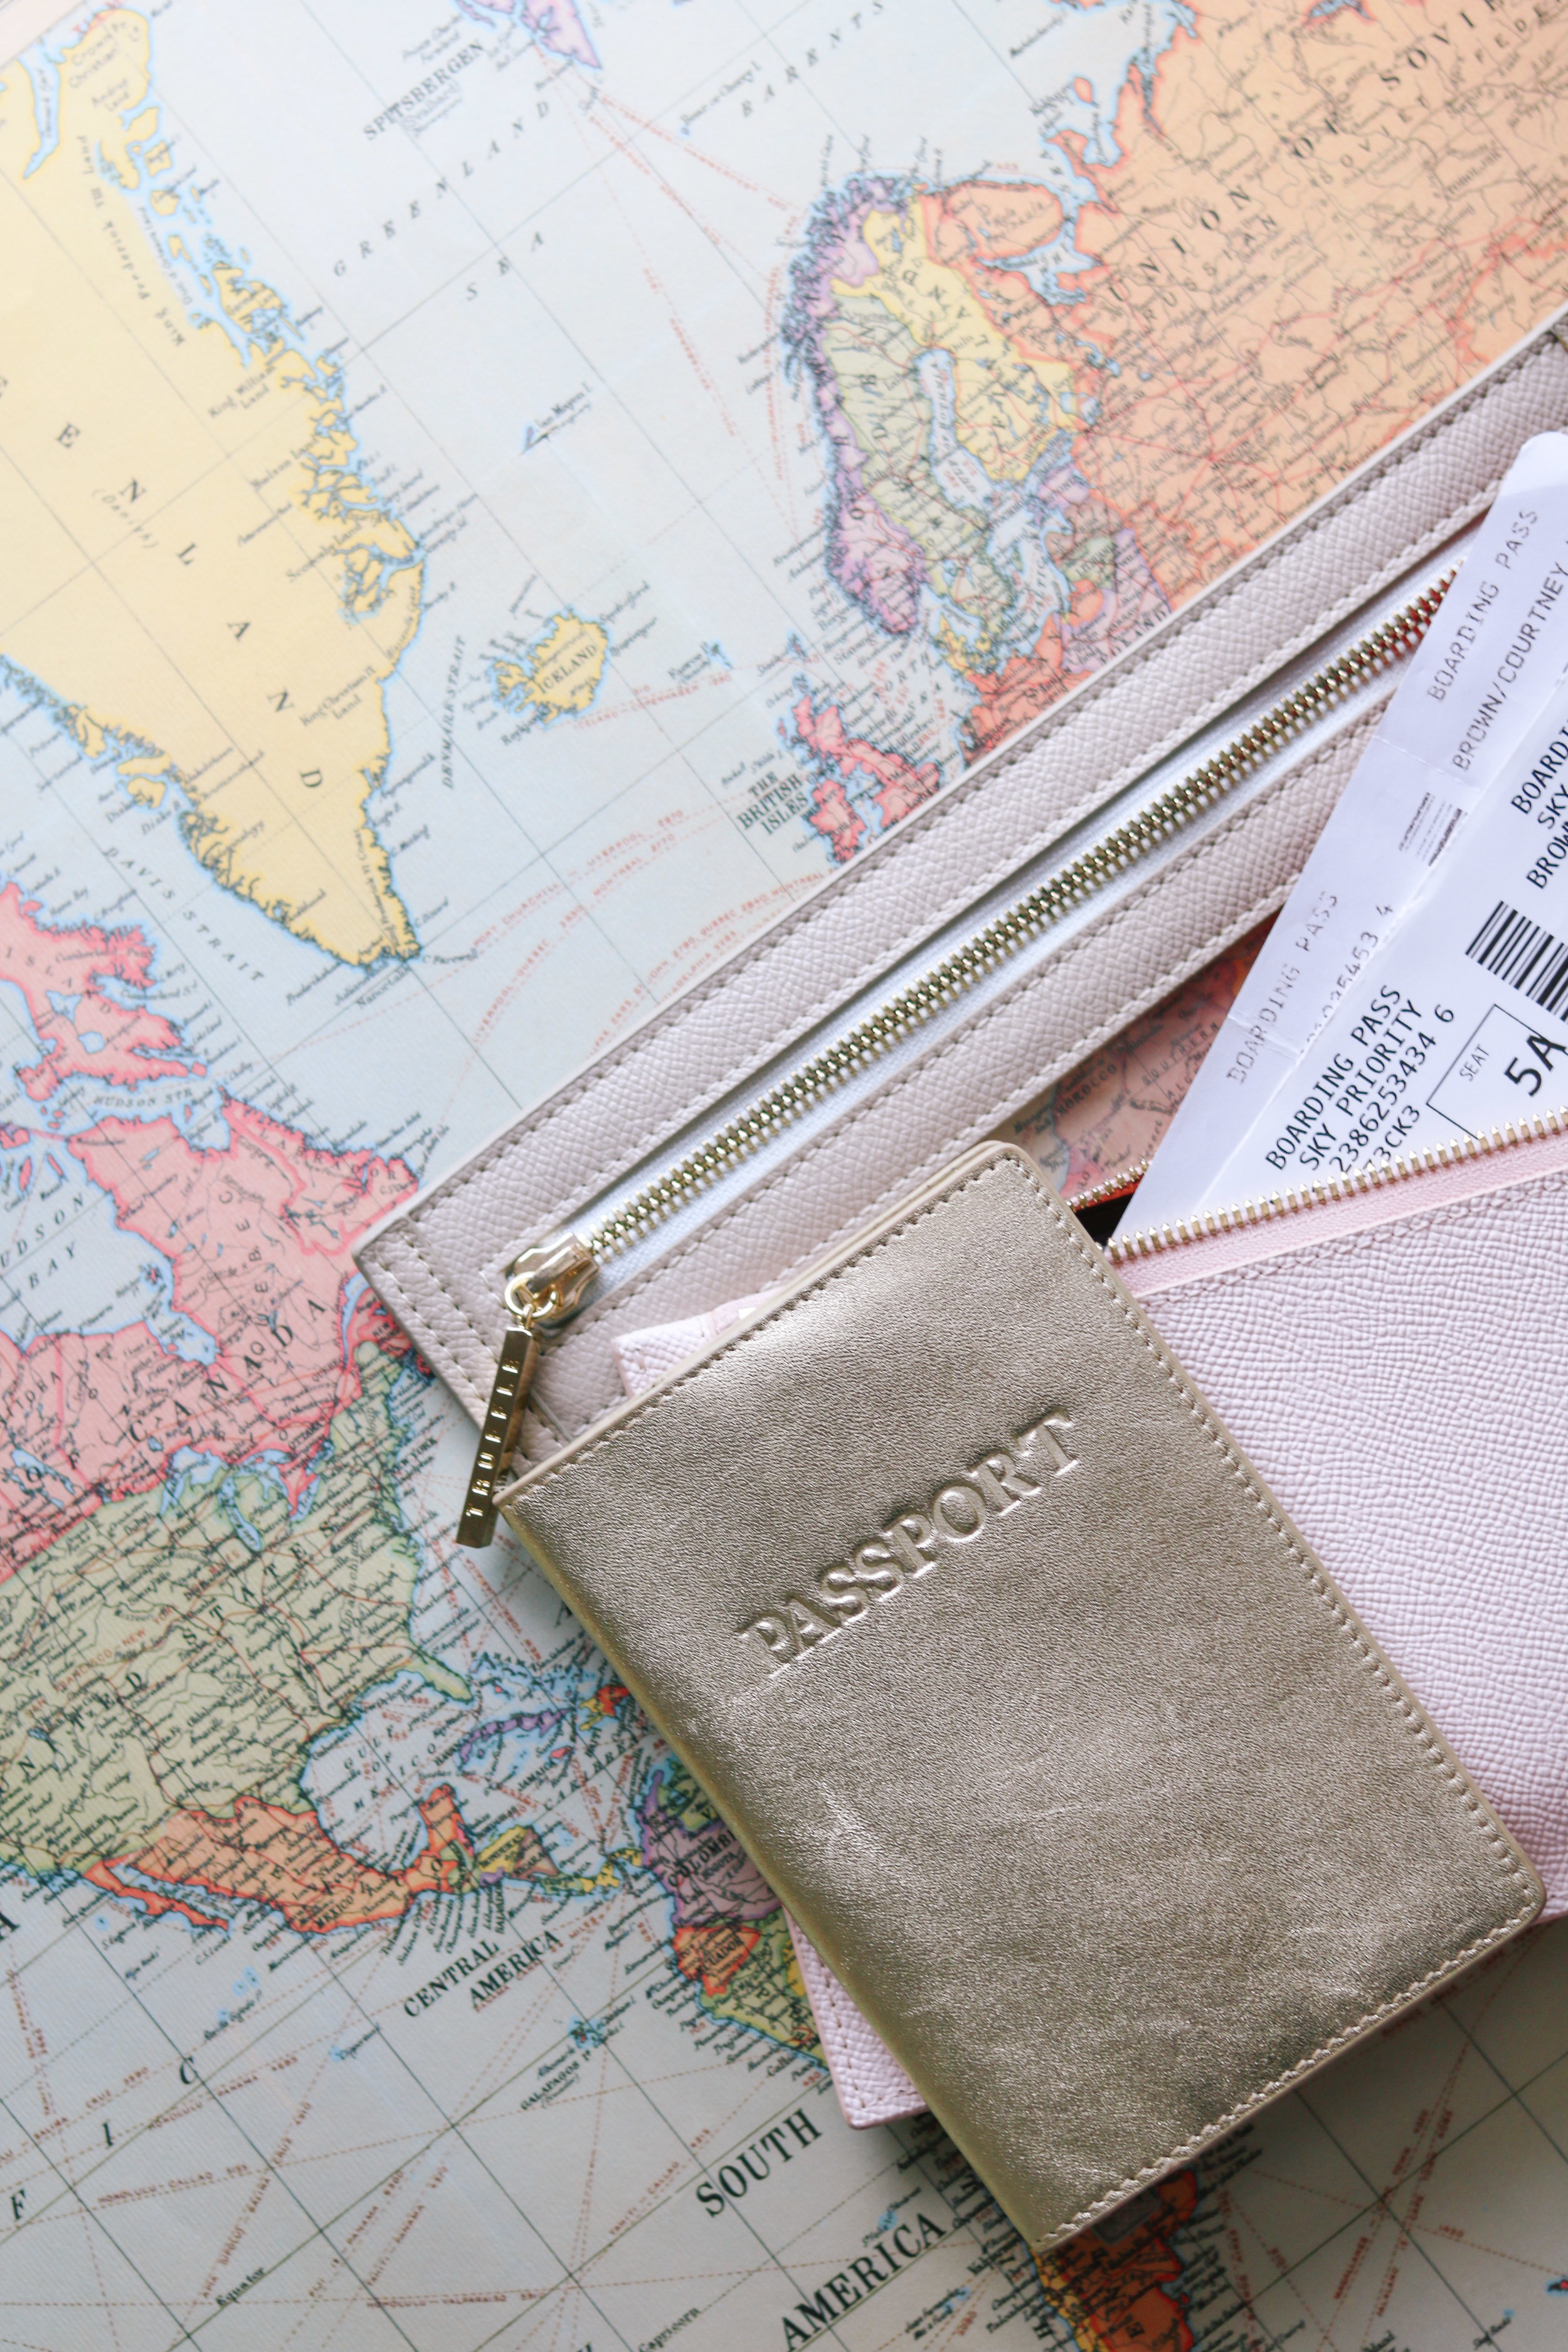 Tips For Last Minute Travel - by Courtney Brown